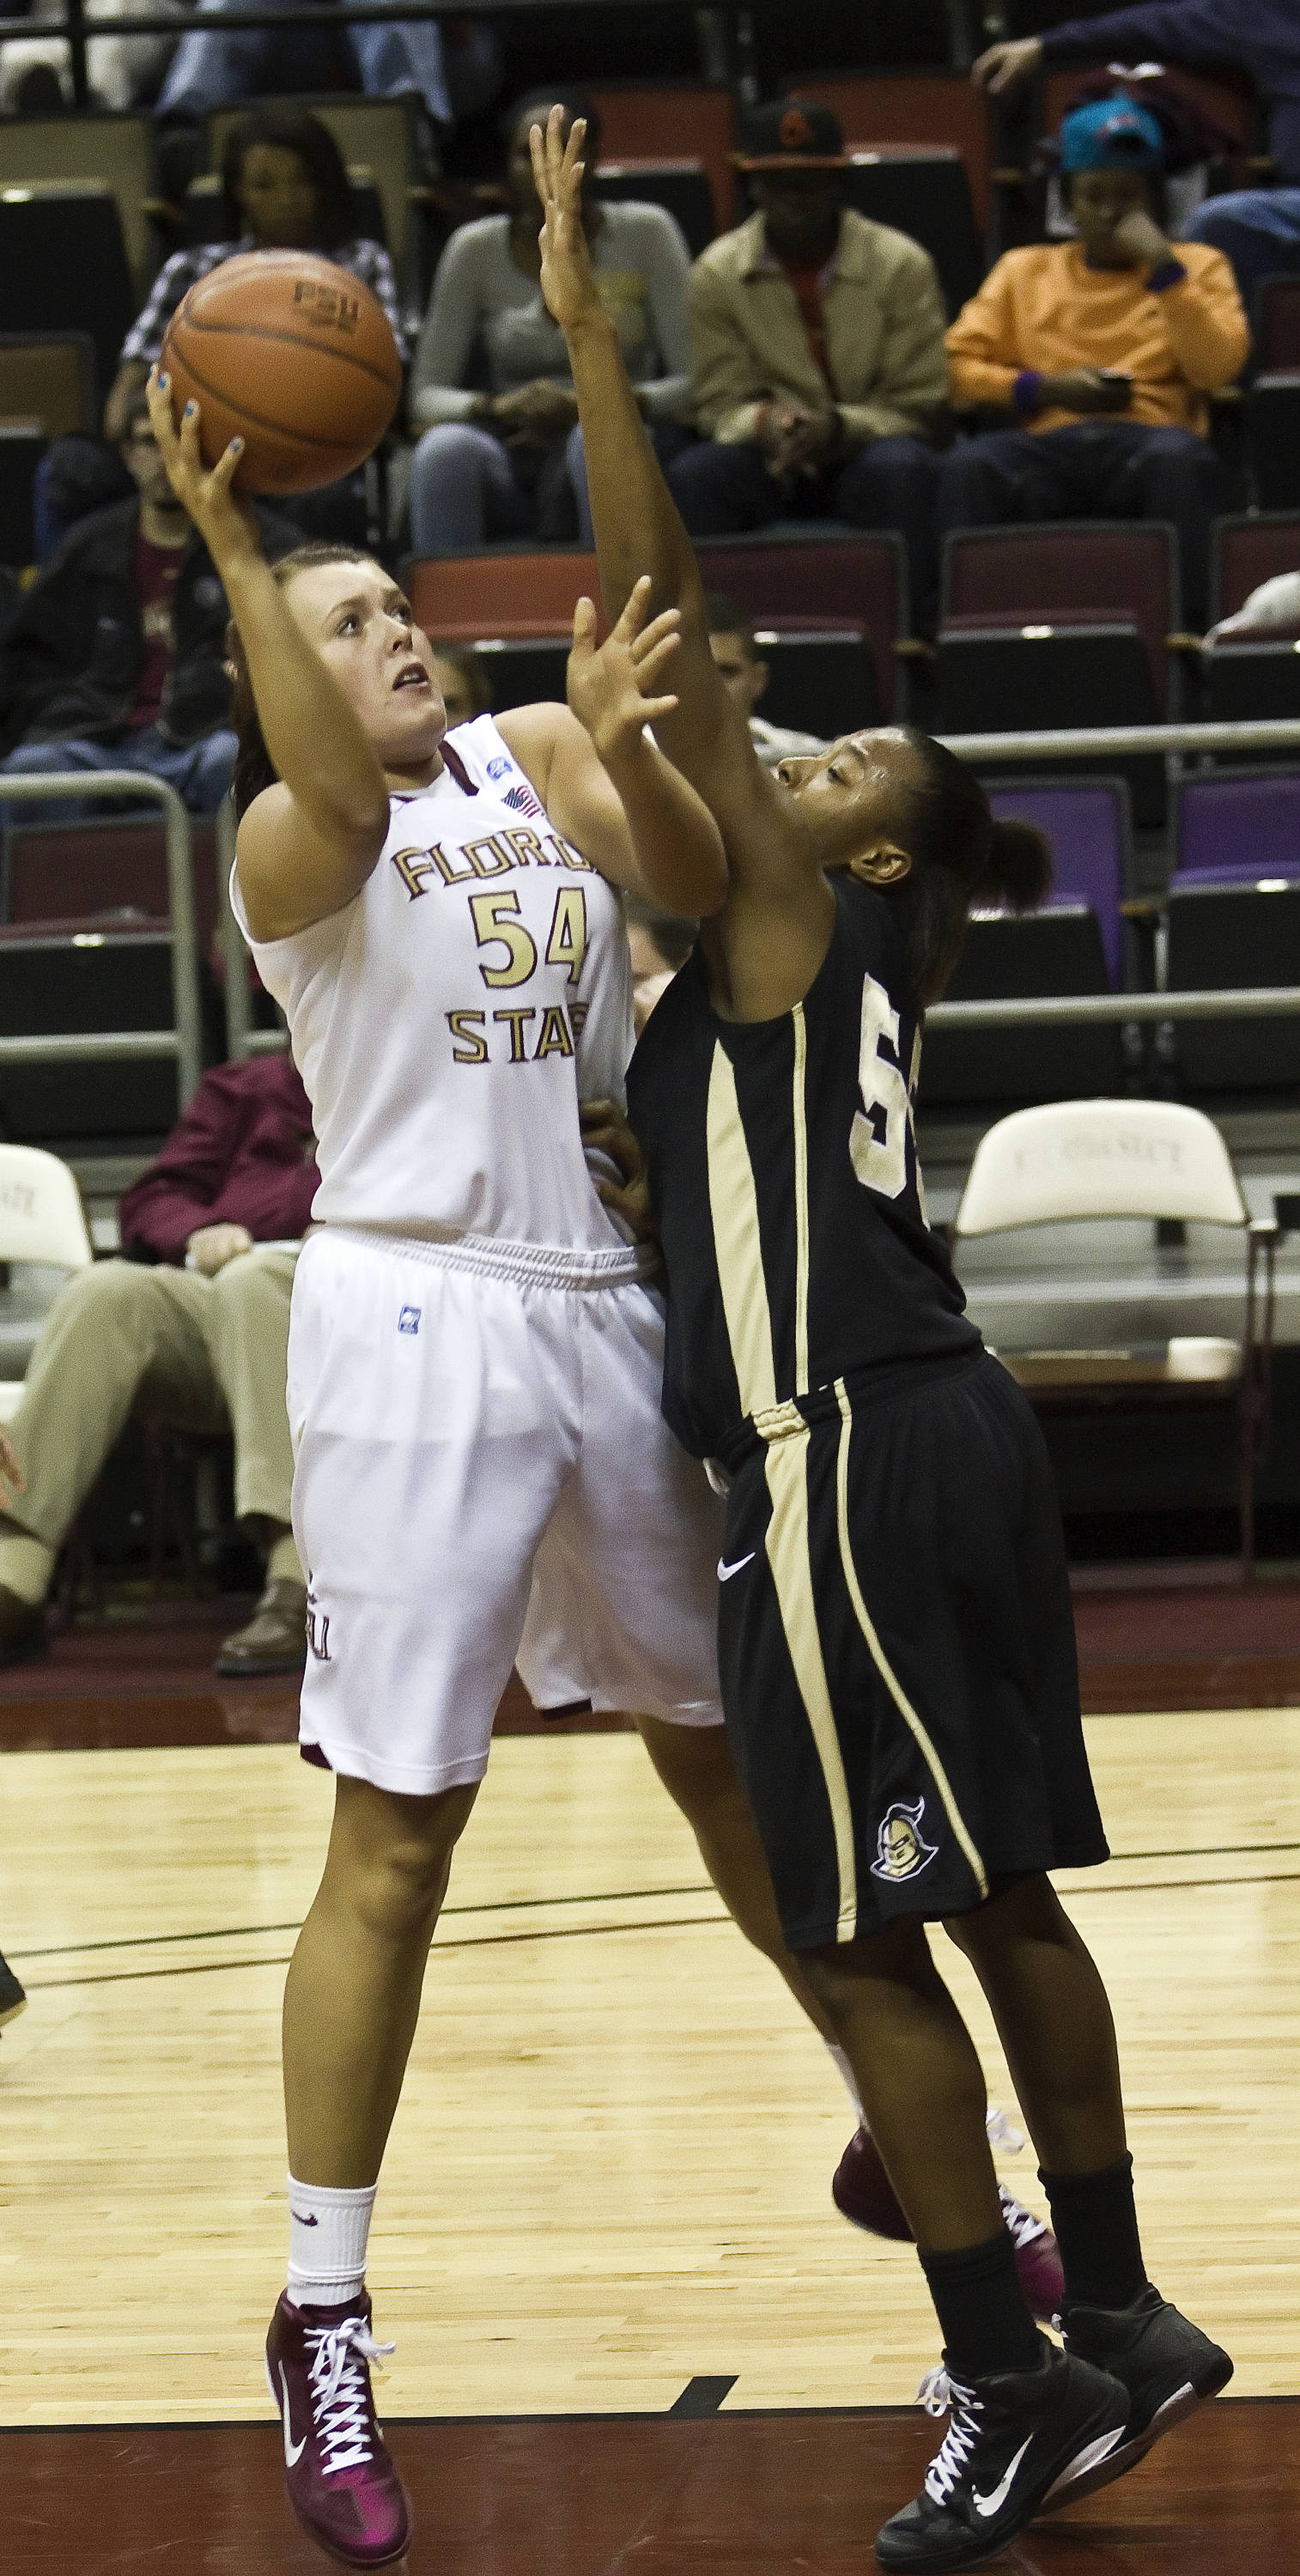 FSU vs UCF - 12/15/10 - Cierra Bravard (54)#$%^Photo by Steve Musco